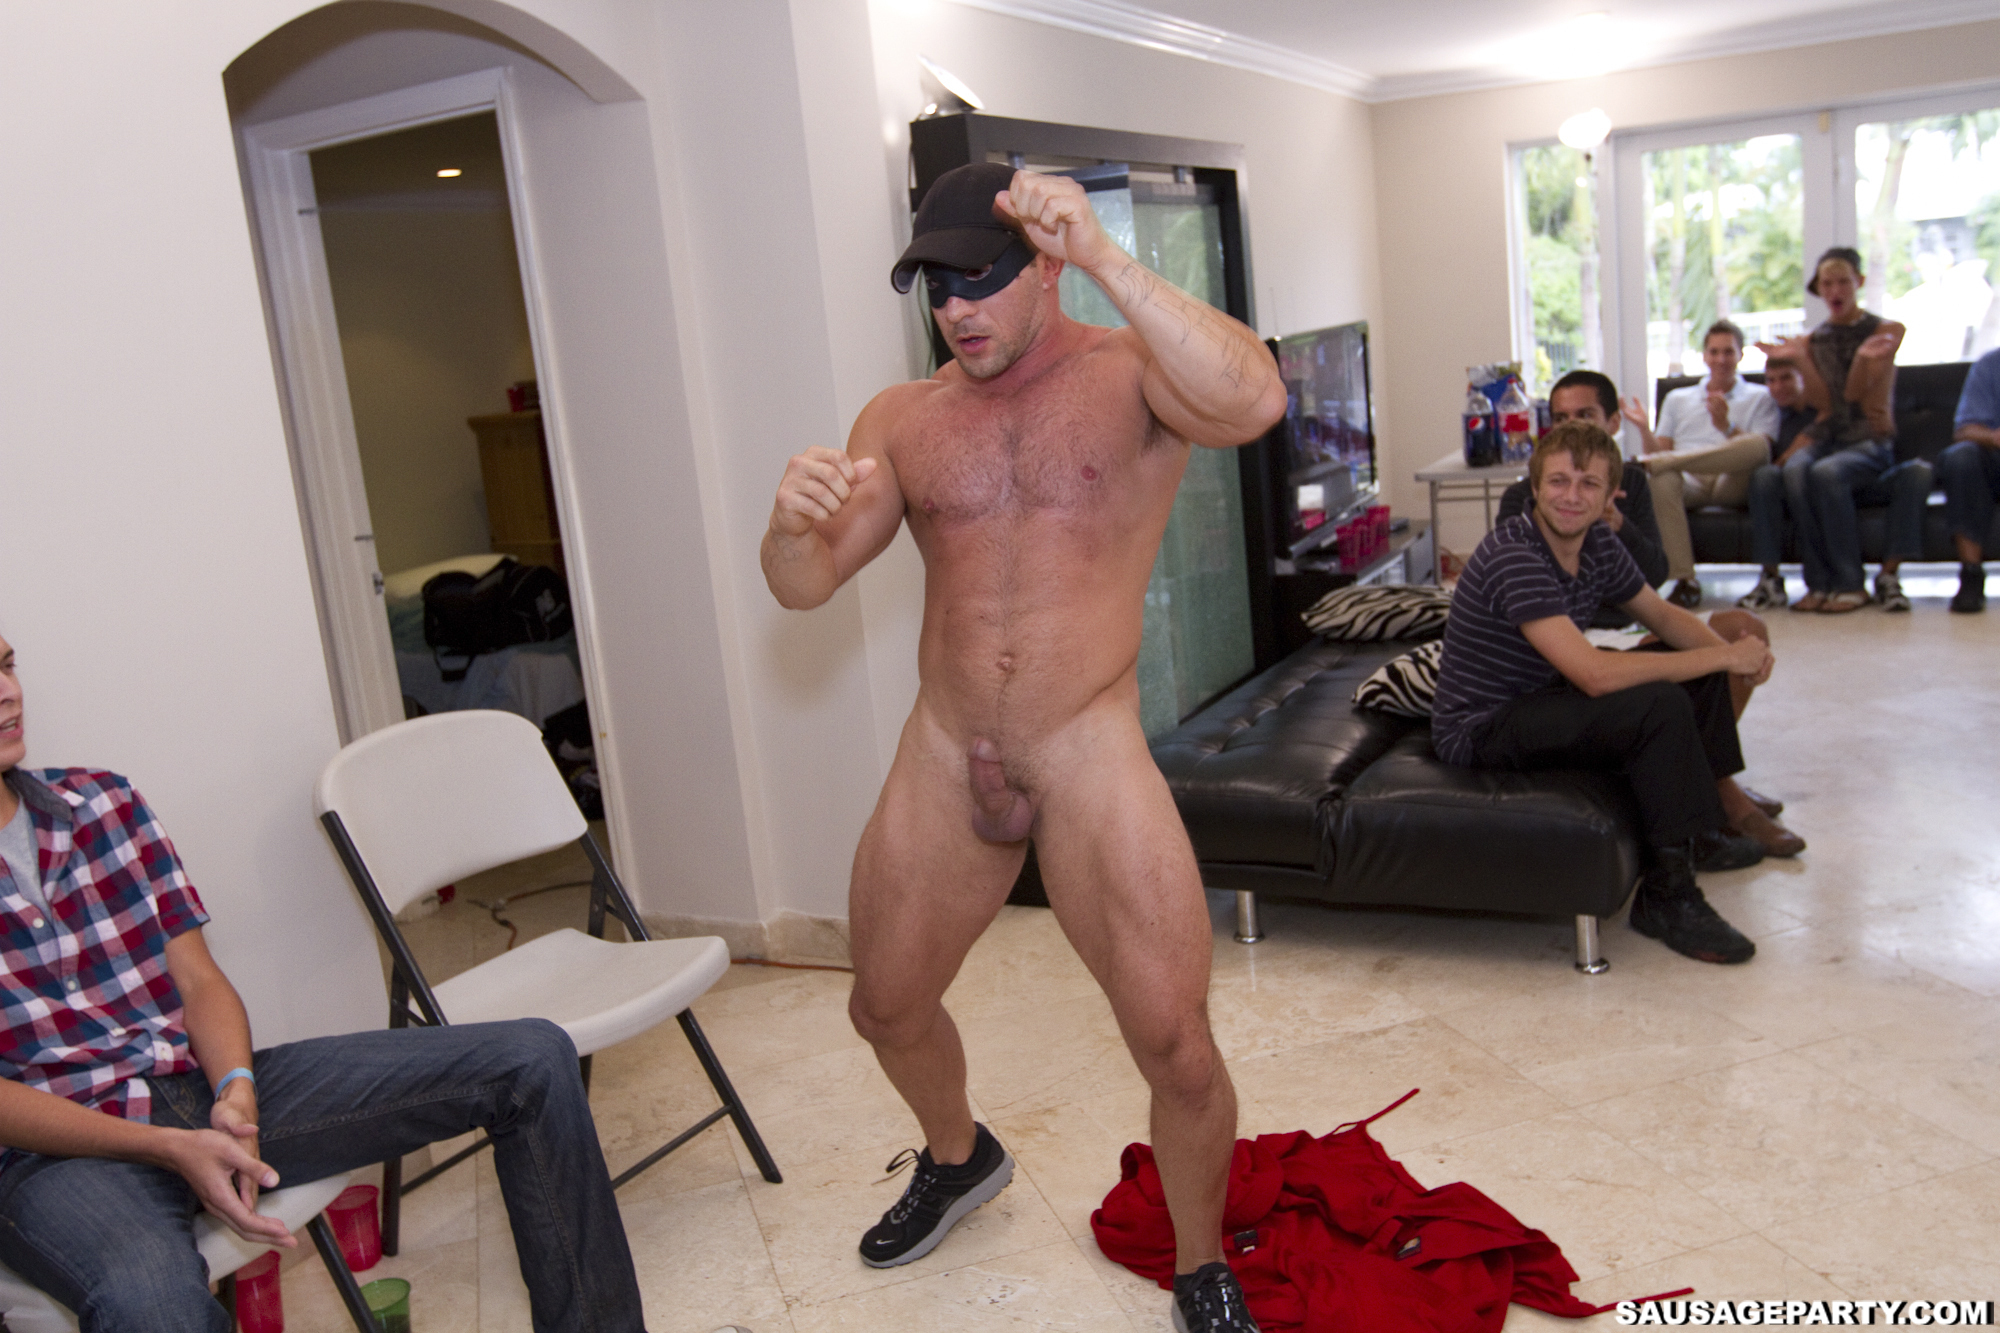 image Old man boy gallery gay sex xxx jesse